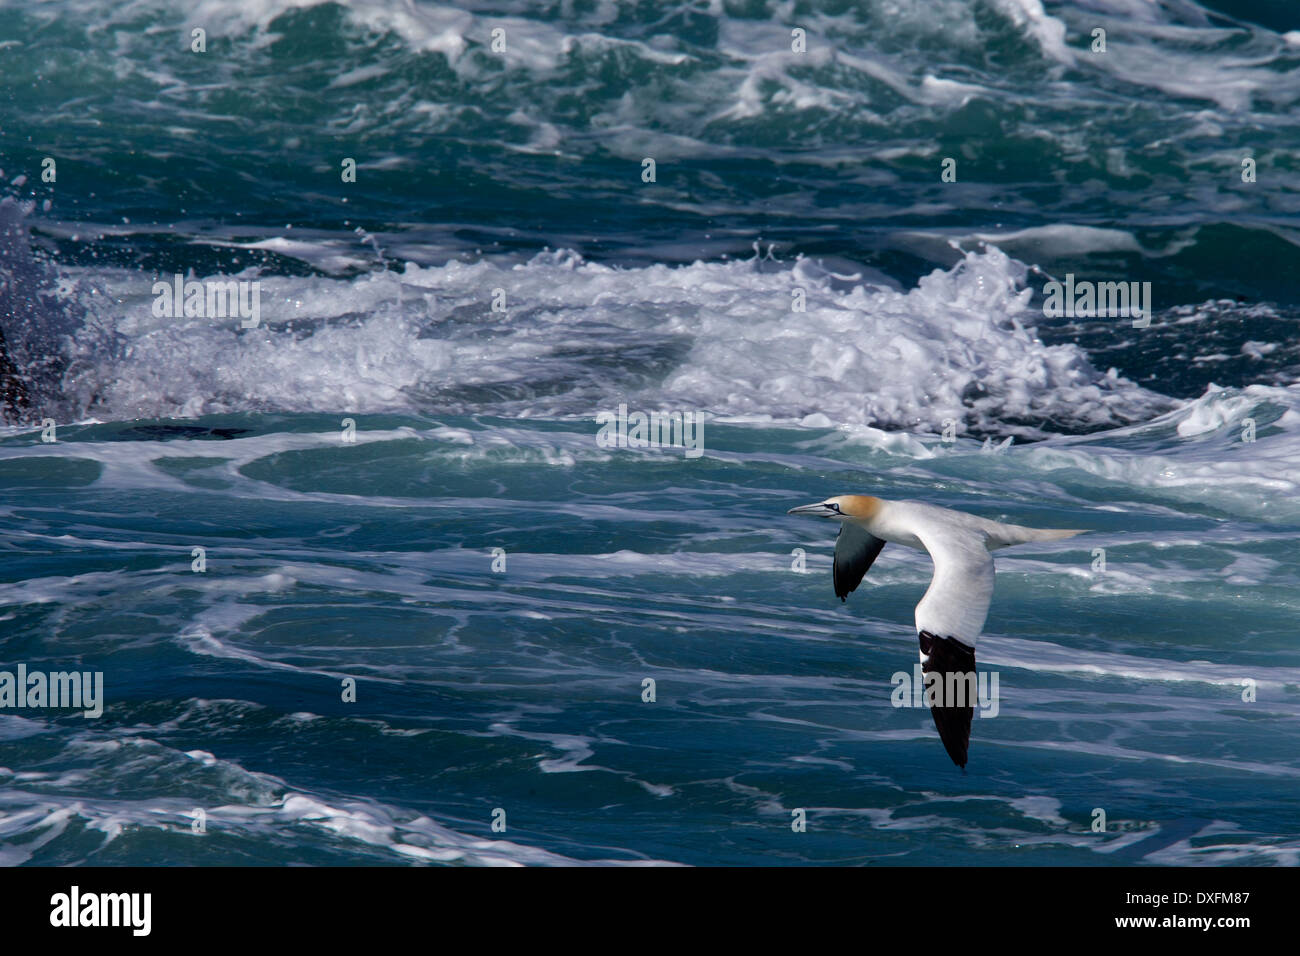 An adult Northern Gannet (Morus bassanus) flying low over the rough sea, Cornwall, UK. - Stock Image